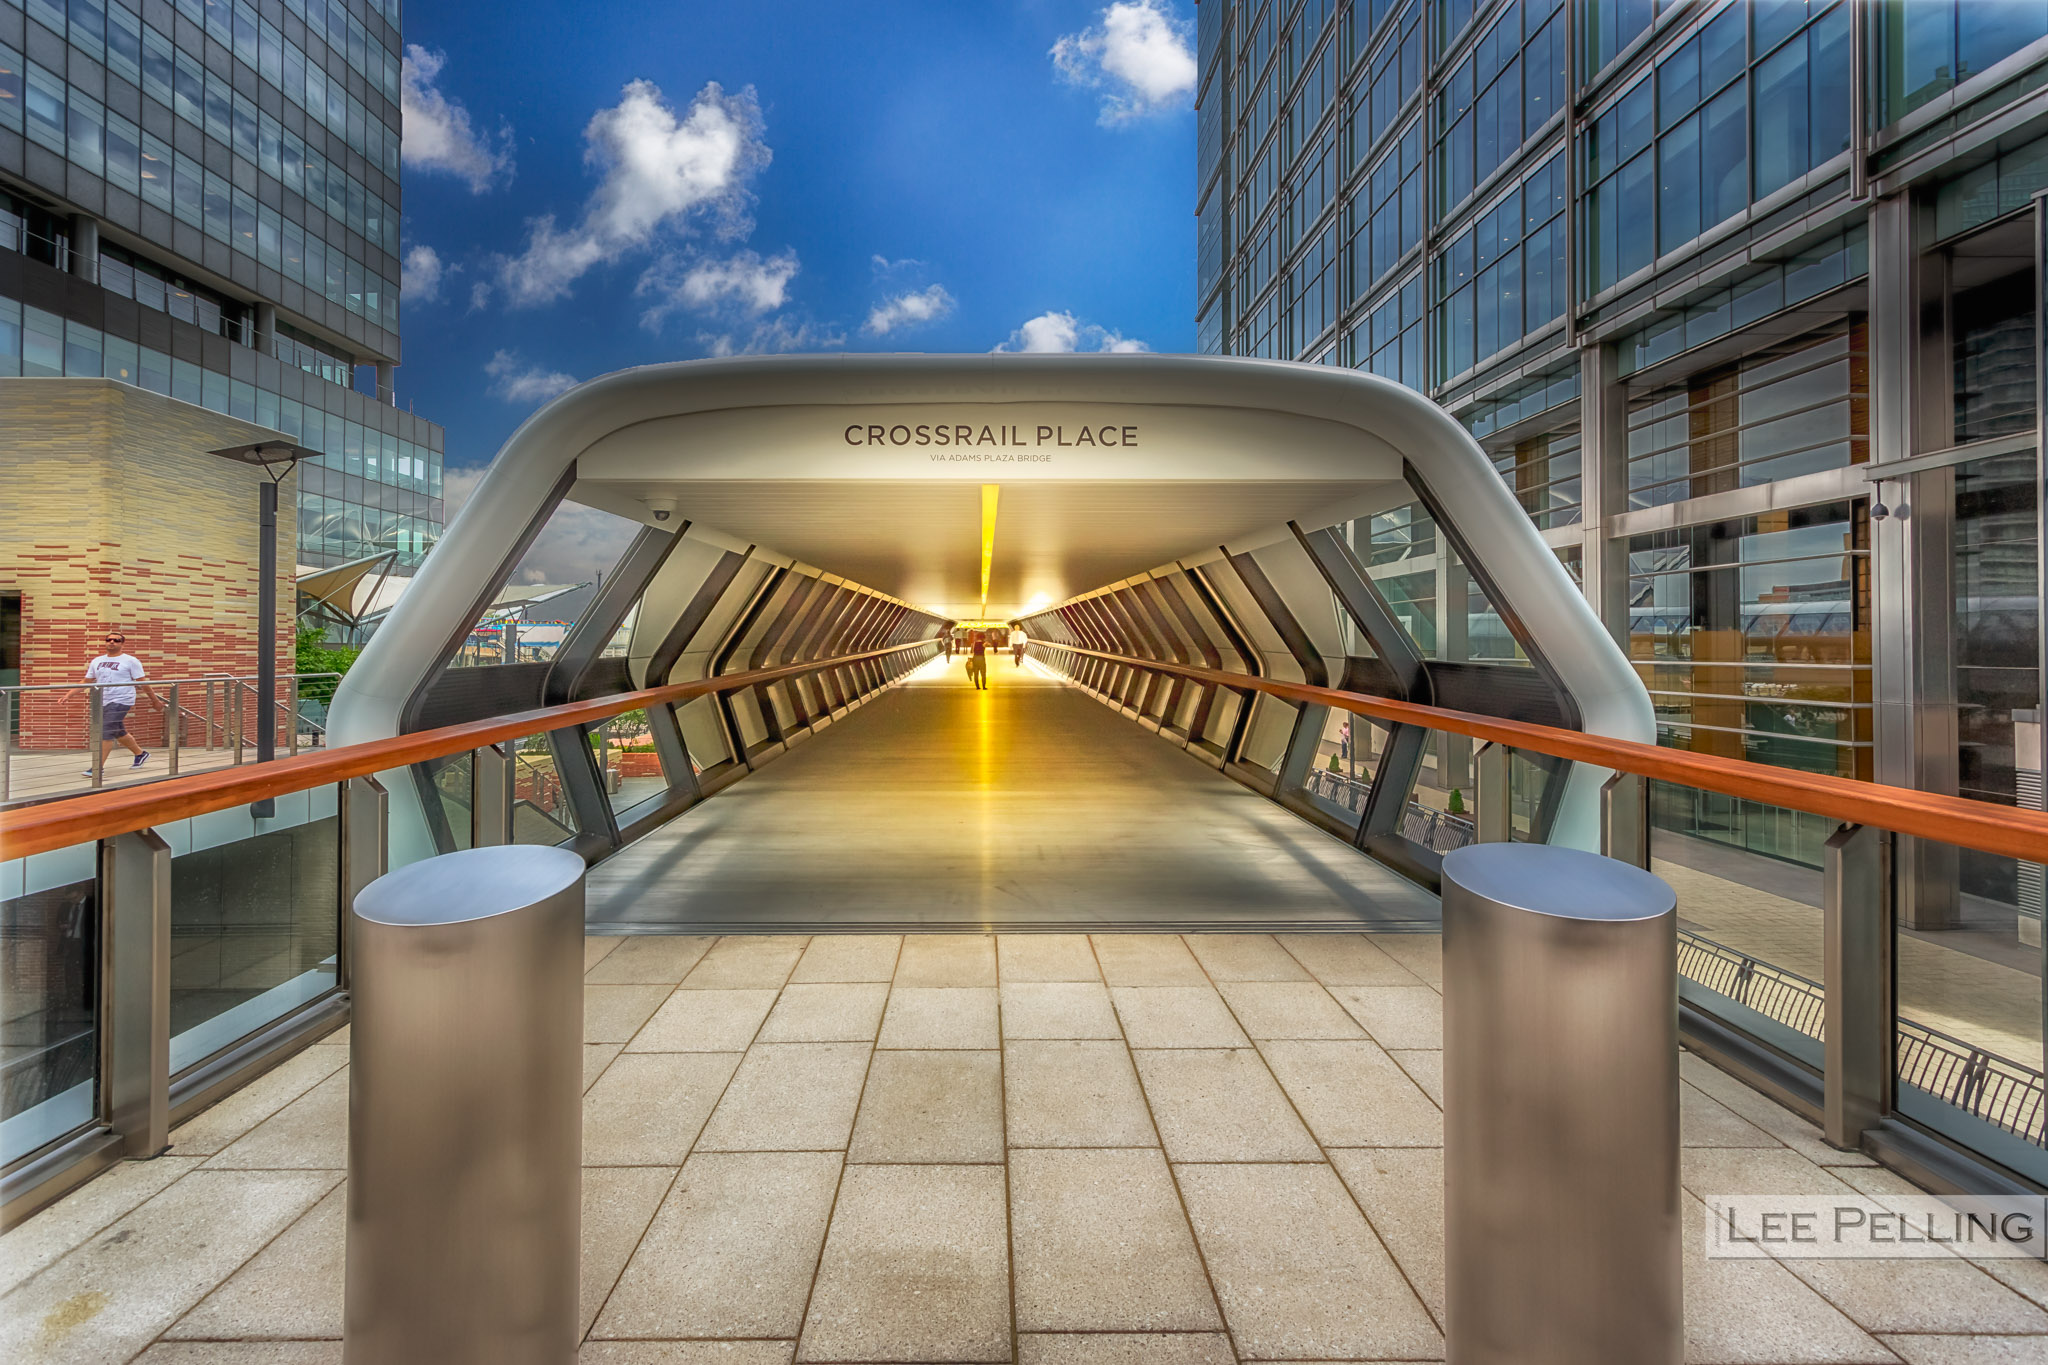 Crossrail Place via Adams Plaza Bridge